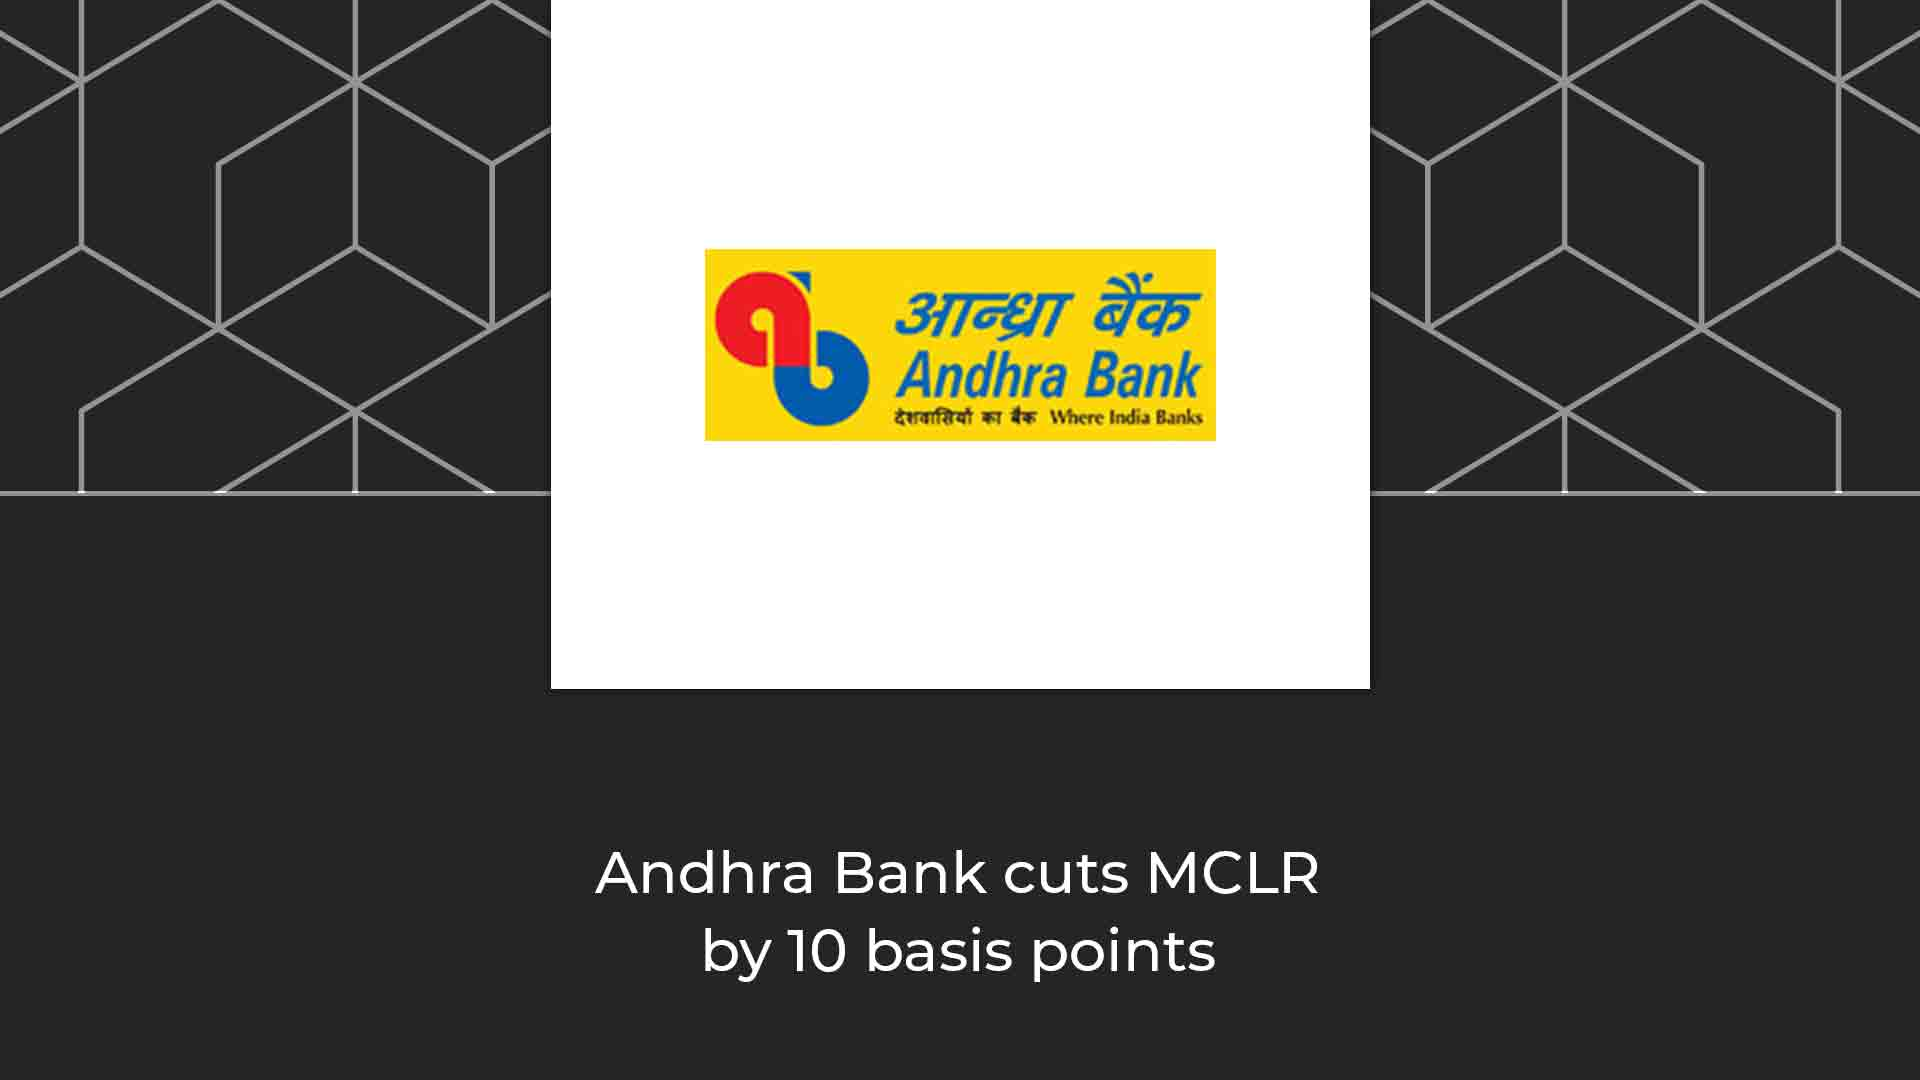 Andhra Bank to cut MCLR by 10 basis points across all tenors